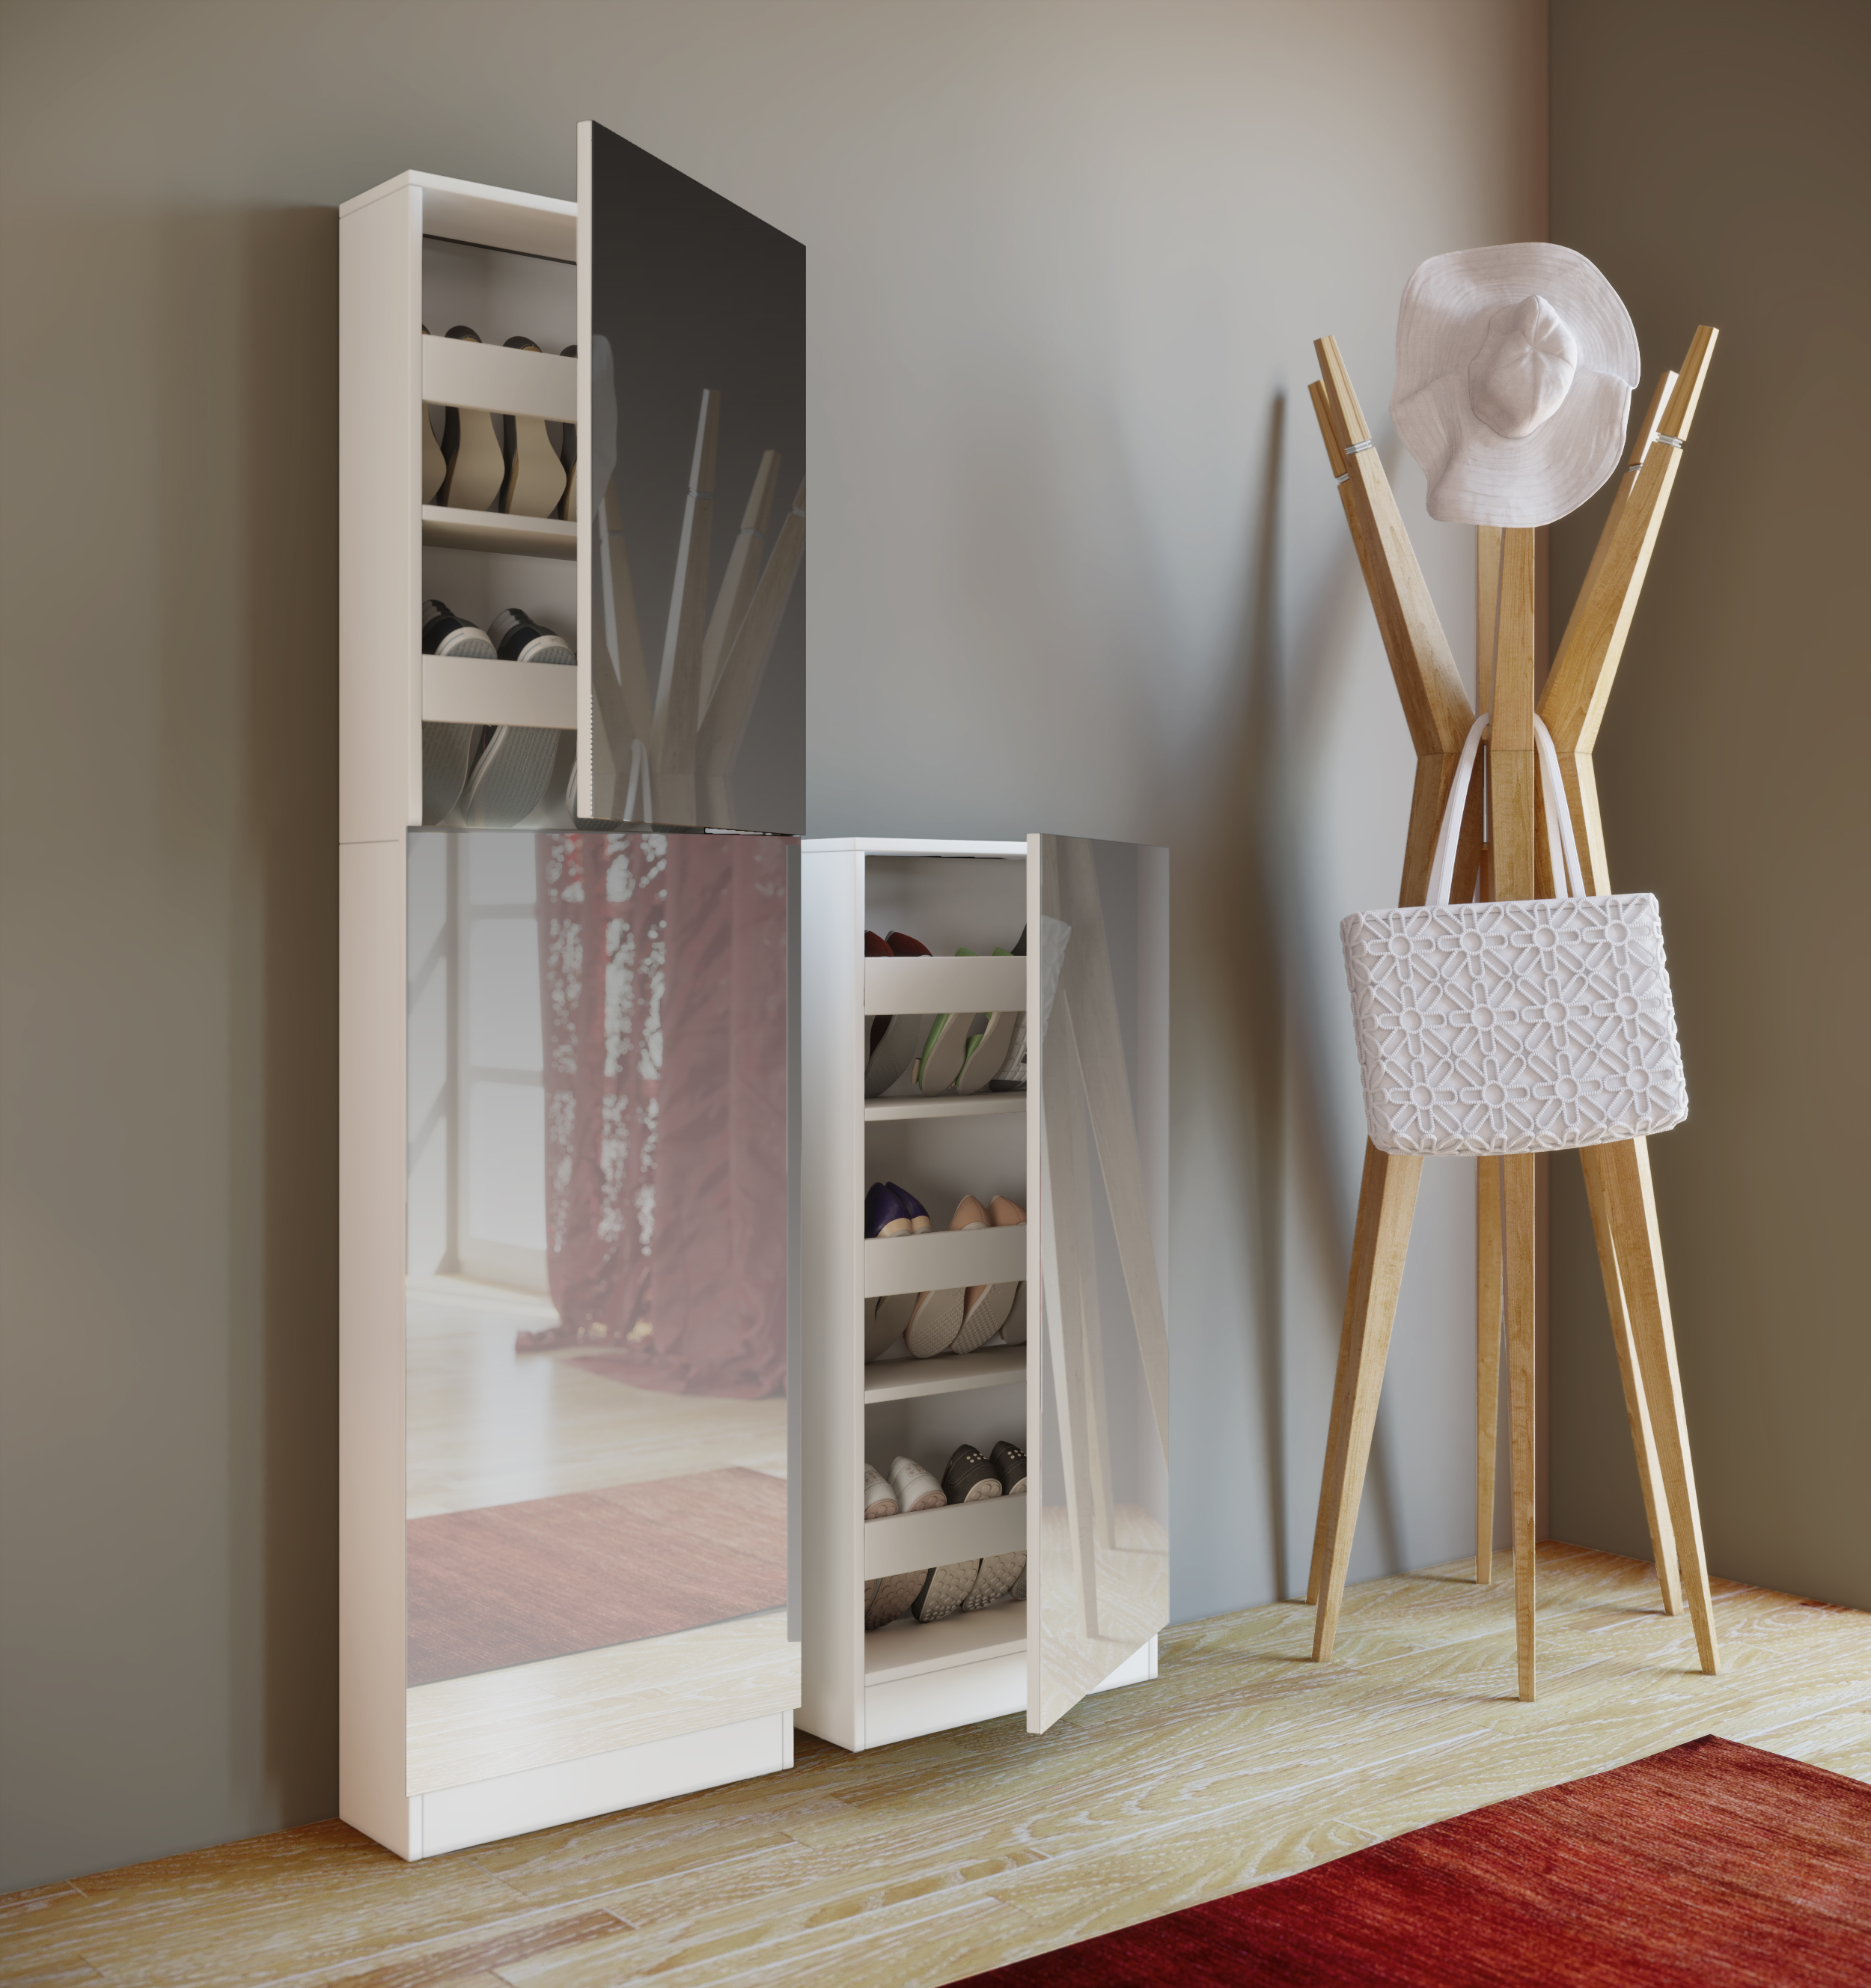 schuhschrank wei mit spiegel schuhablage schuhregal spiegelschrank m bel. Black Bedroom Furniture Sets. Home Design Ideas